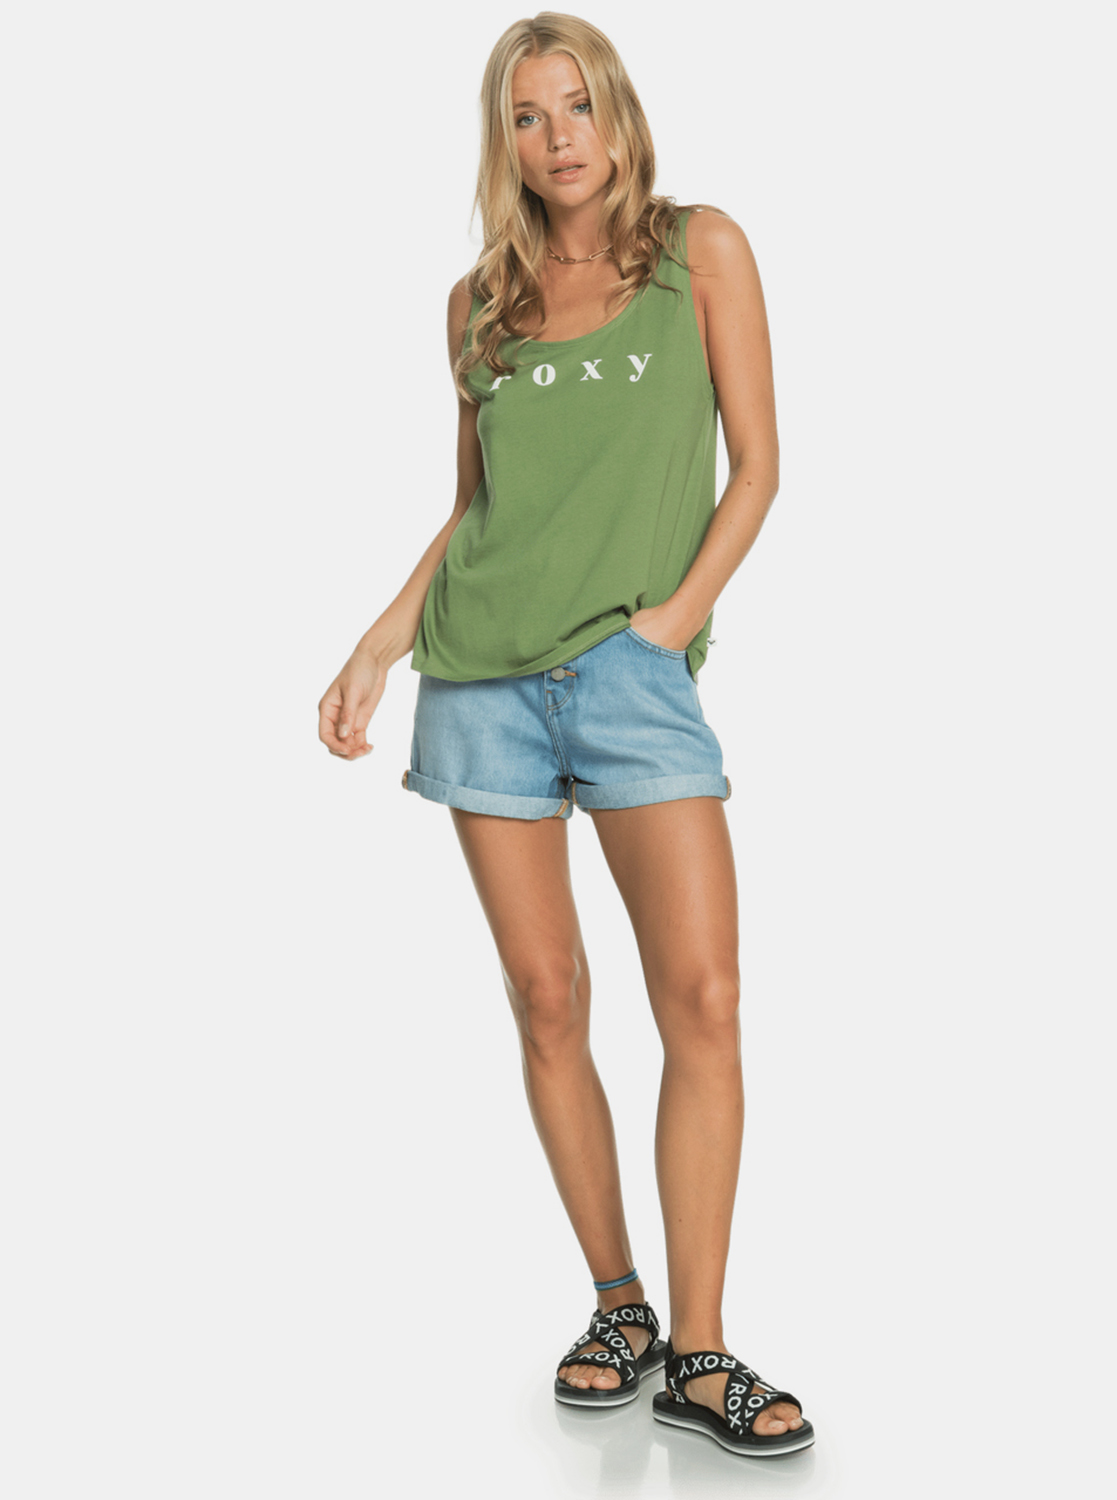 Roxy green top with print